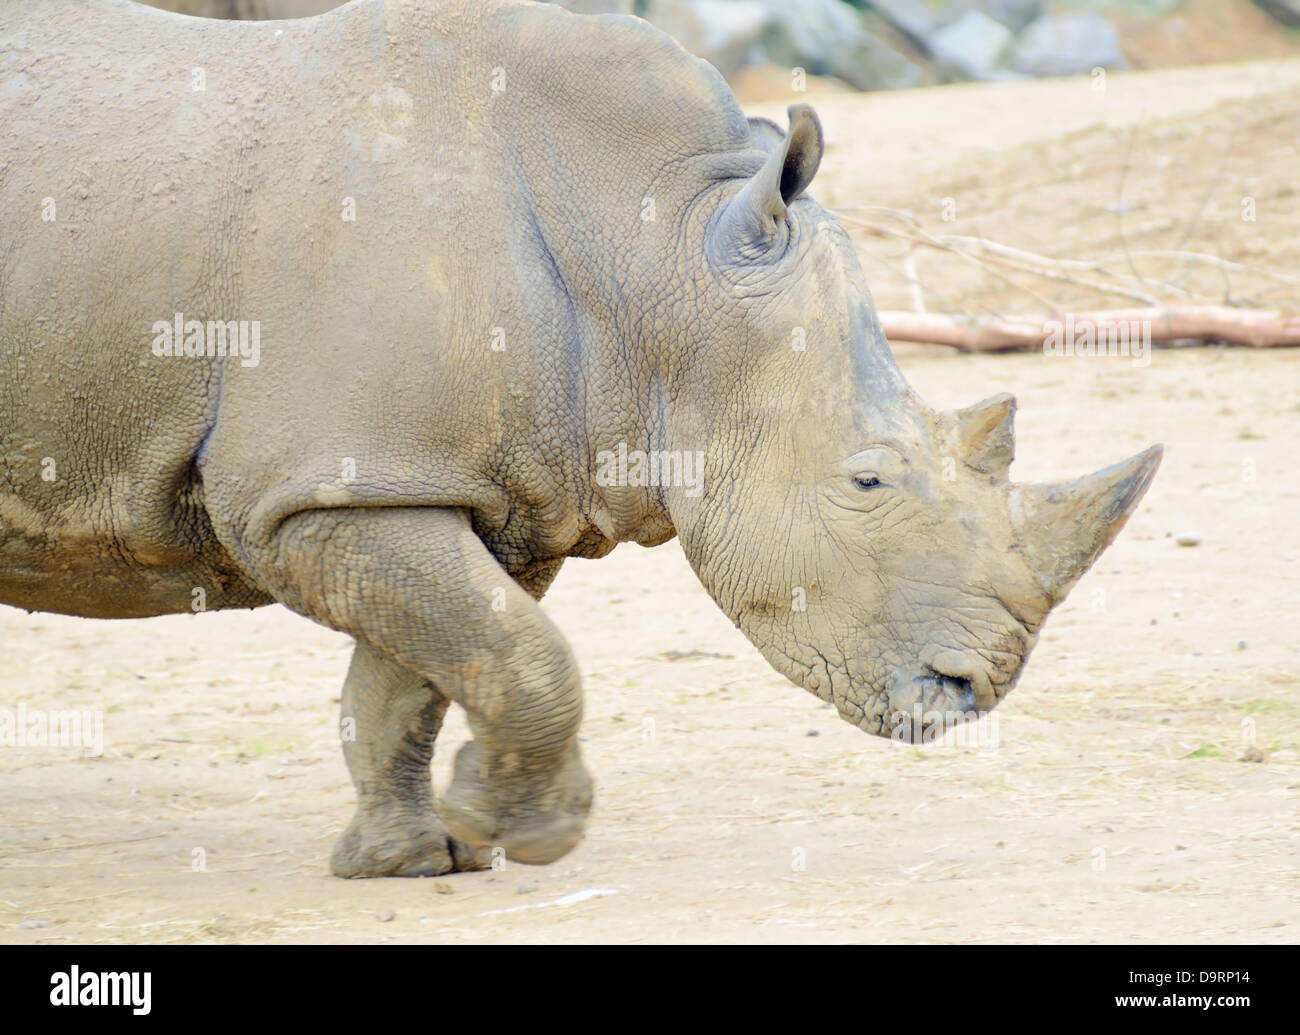 Rhinoceros profile running fast or charging Stock Photo